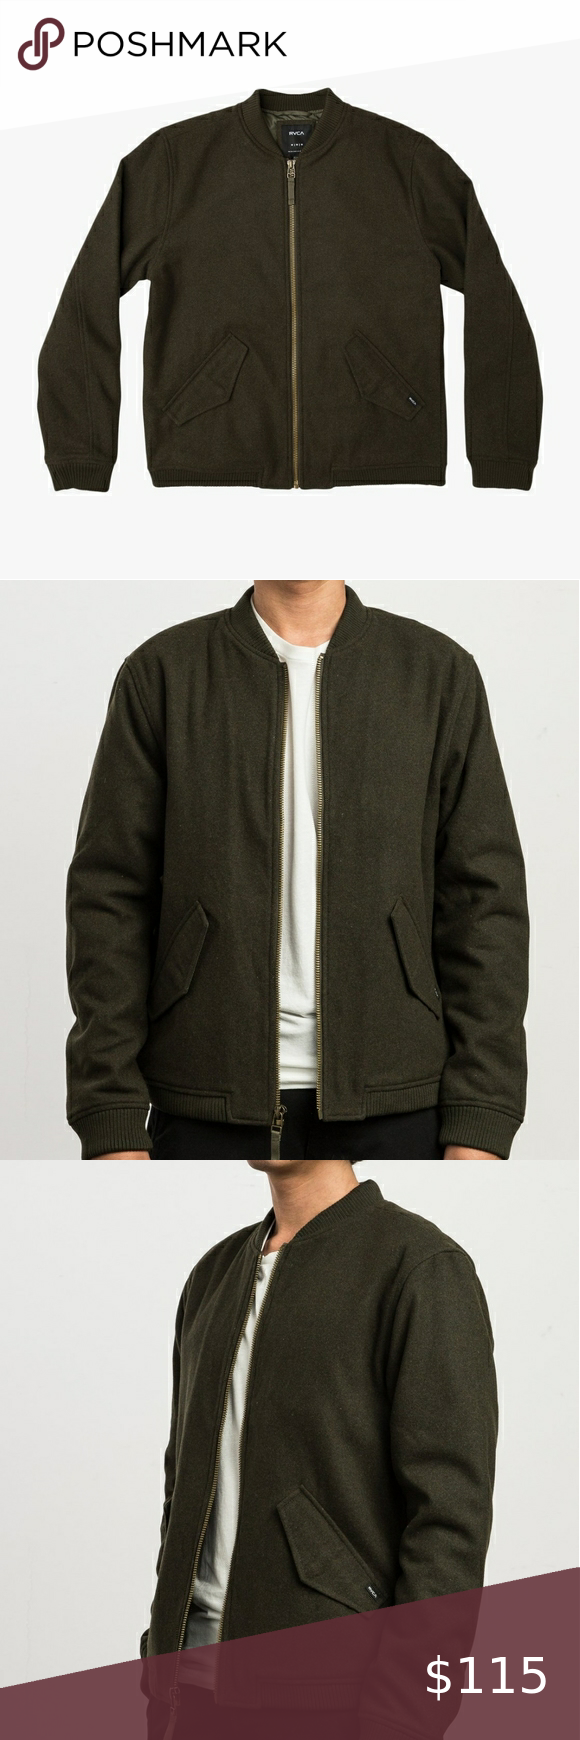 Rvca Collective Wool Bomber Jacket Mens S M704srvo Wool Bomber Jacket Bomber Jacket Rvca Jacket [ 1740 x 580 Pixel ]